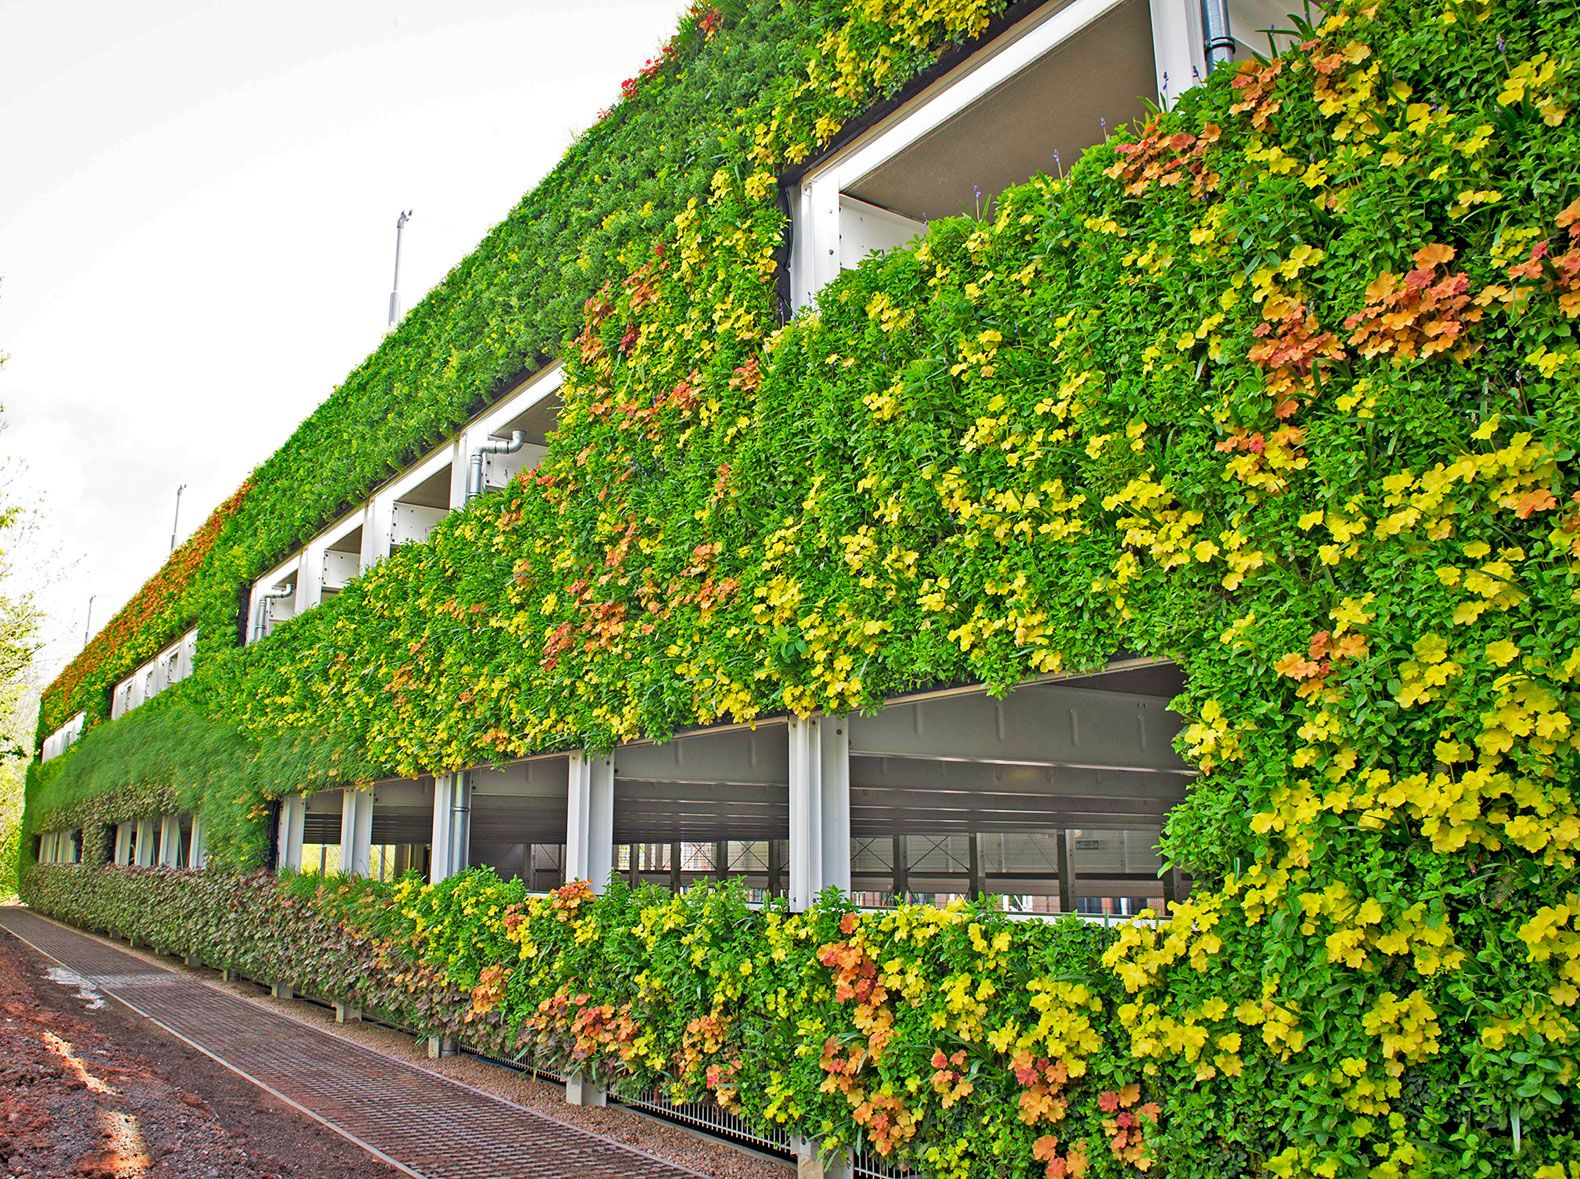 europes largest living wall unveiled in the uk - Garden Design Grid